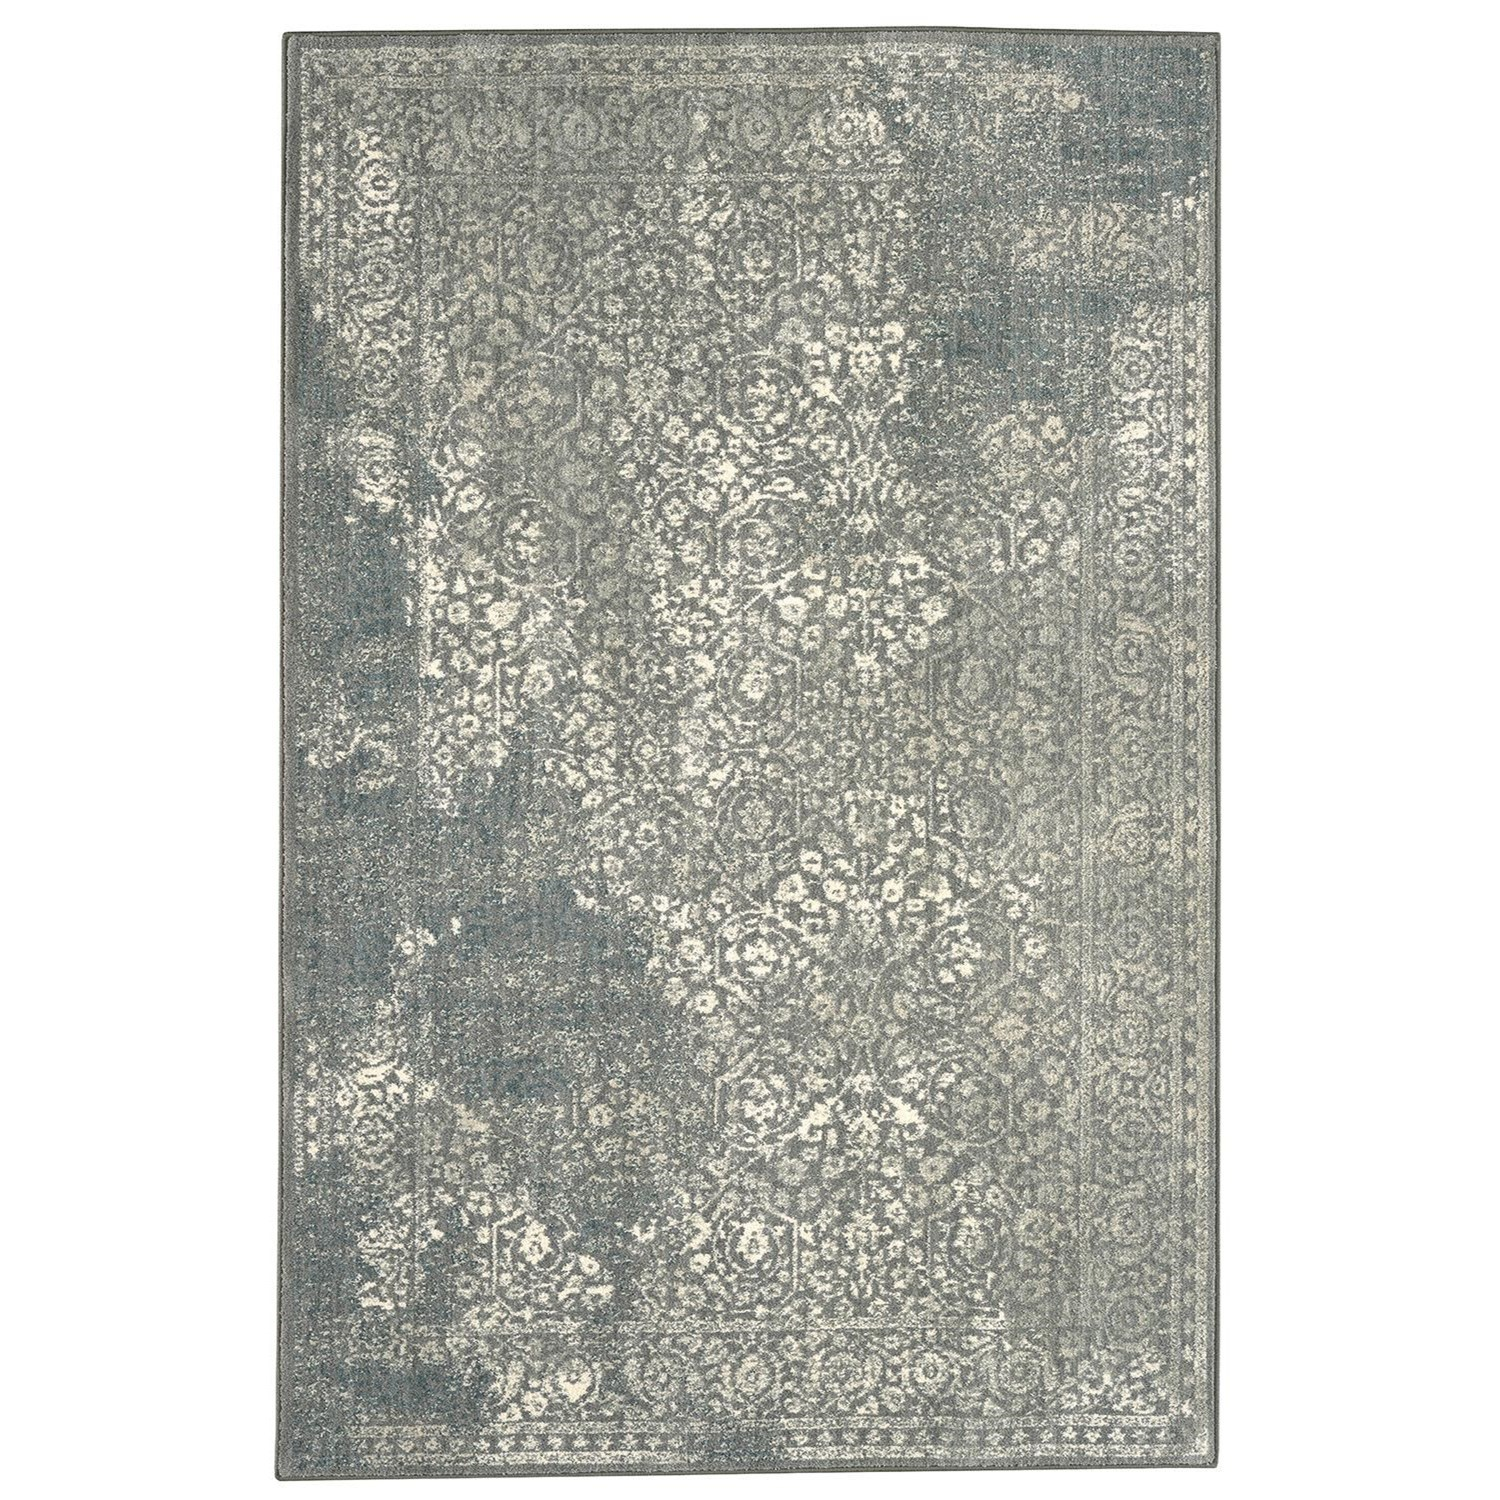 Karastan Rugs Euphoria 5'3x7'10 Ayr Willow Grey Rug - Item Number: 90643 90075 063094